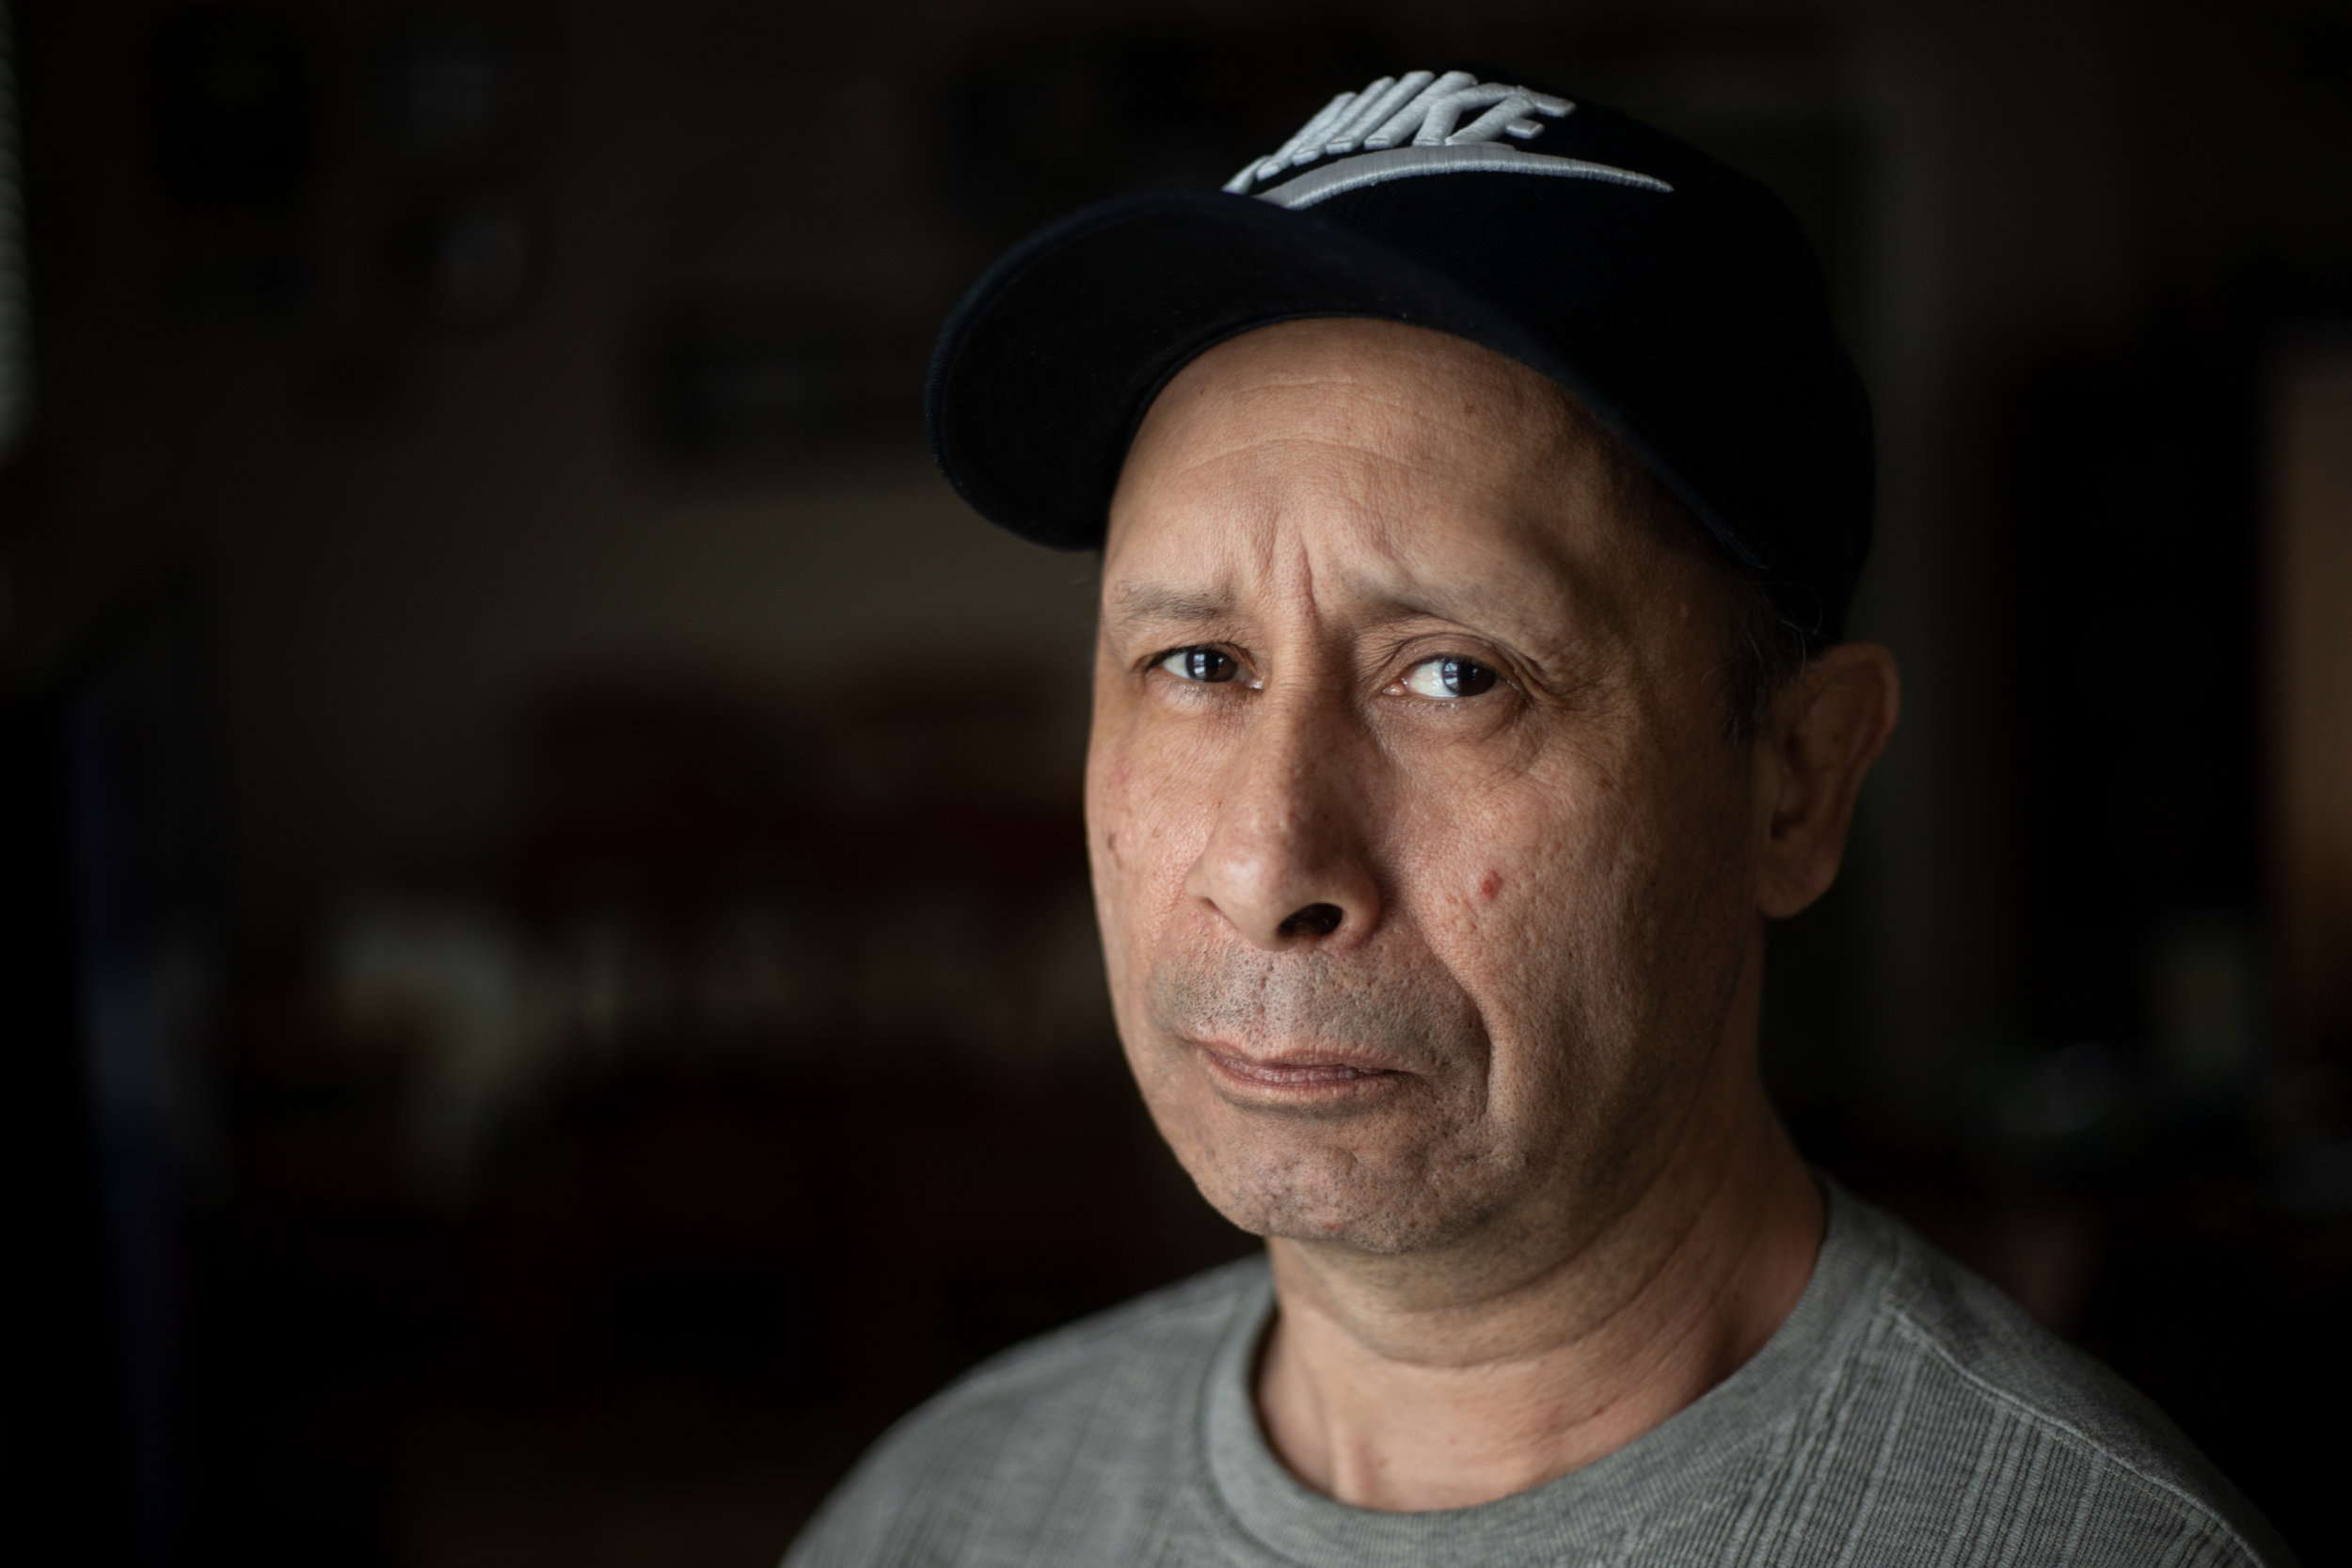 Larry Gallegos found out about his uncle's death in the Utah State Prison from a Standard-Examiner article. Since then, he's been trying to obtain his uncle's remains and find out what happened behind bars. According to official reports, William Edwards Gallegos, 54, died in December 2017 from an apparent methamphetamine overdose. His death was accidental.